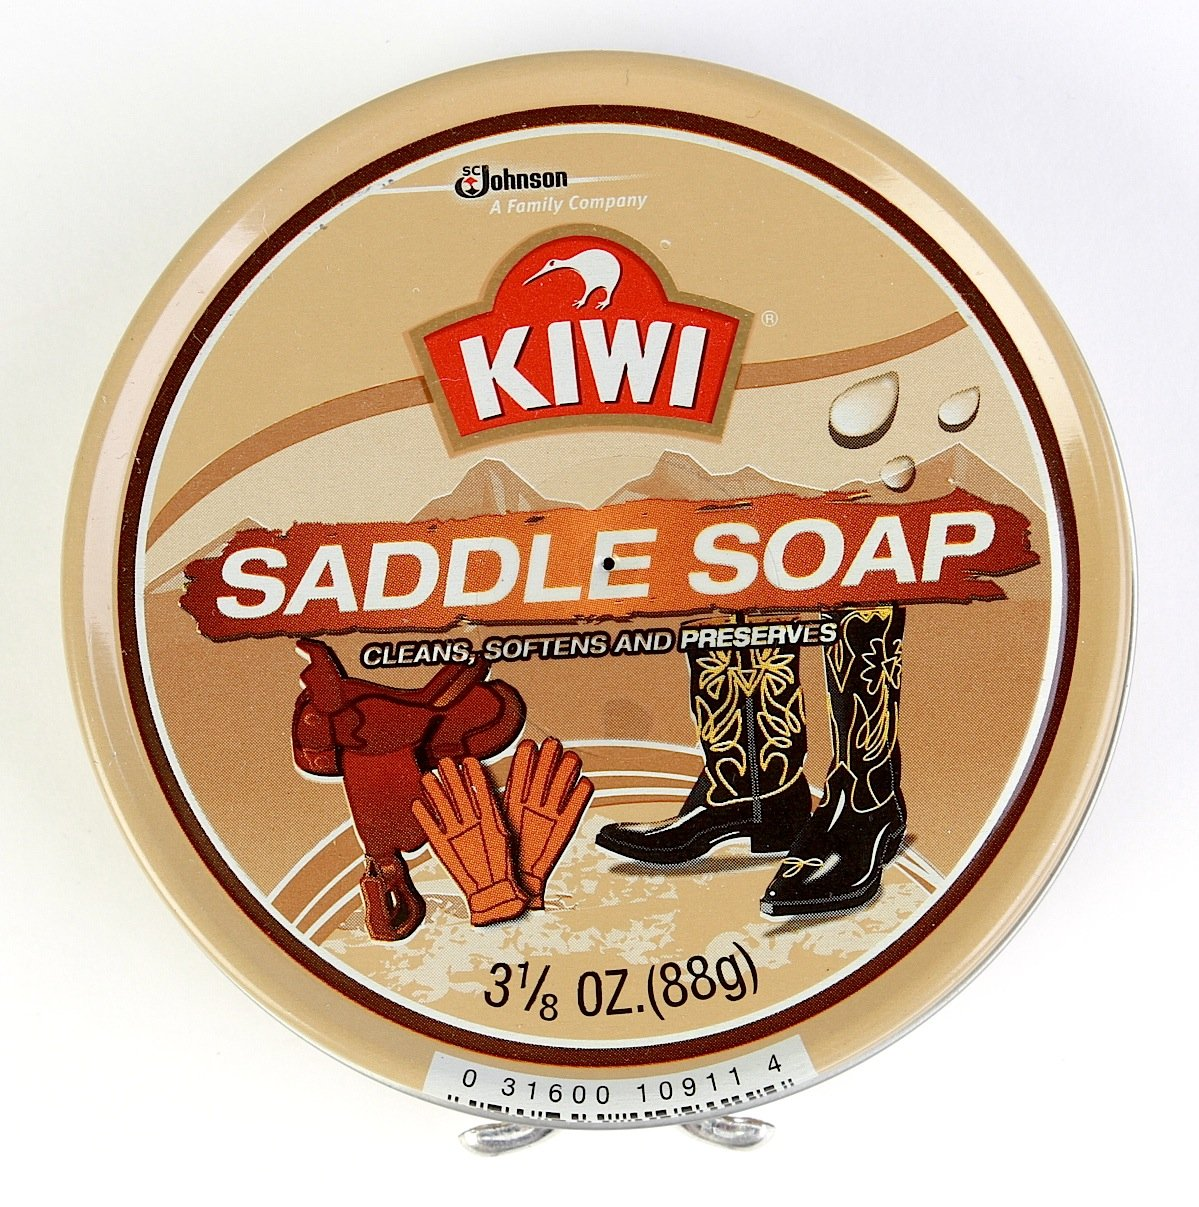 Kiwi Saddle Soap, 3-1/8 oz, 10-Pack